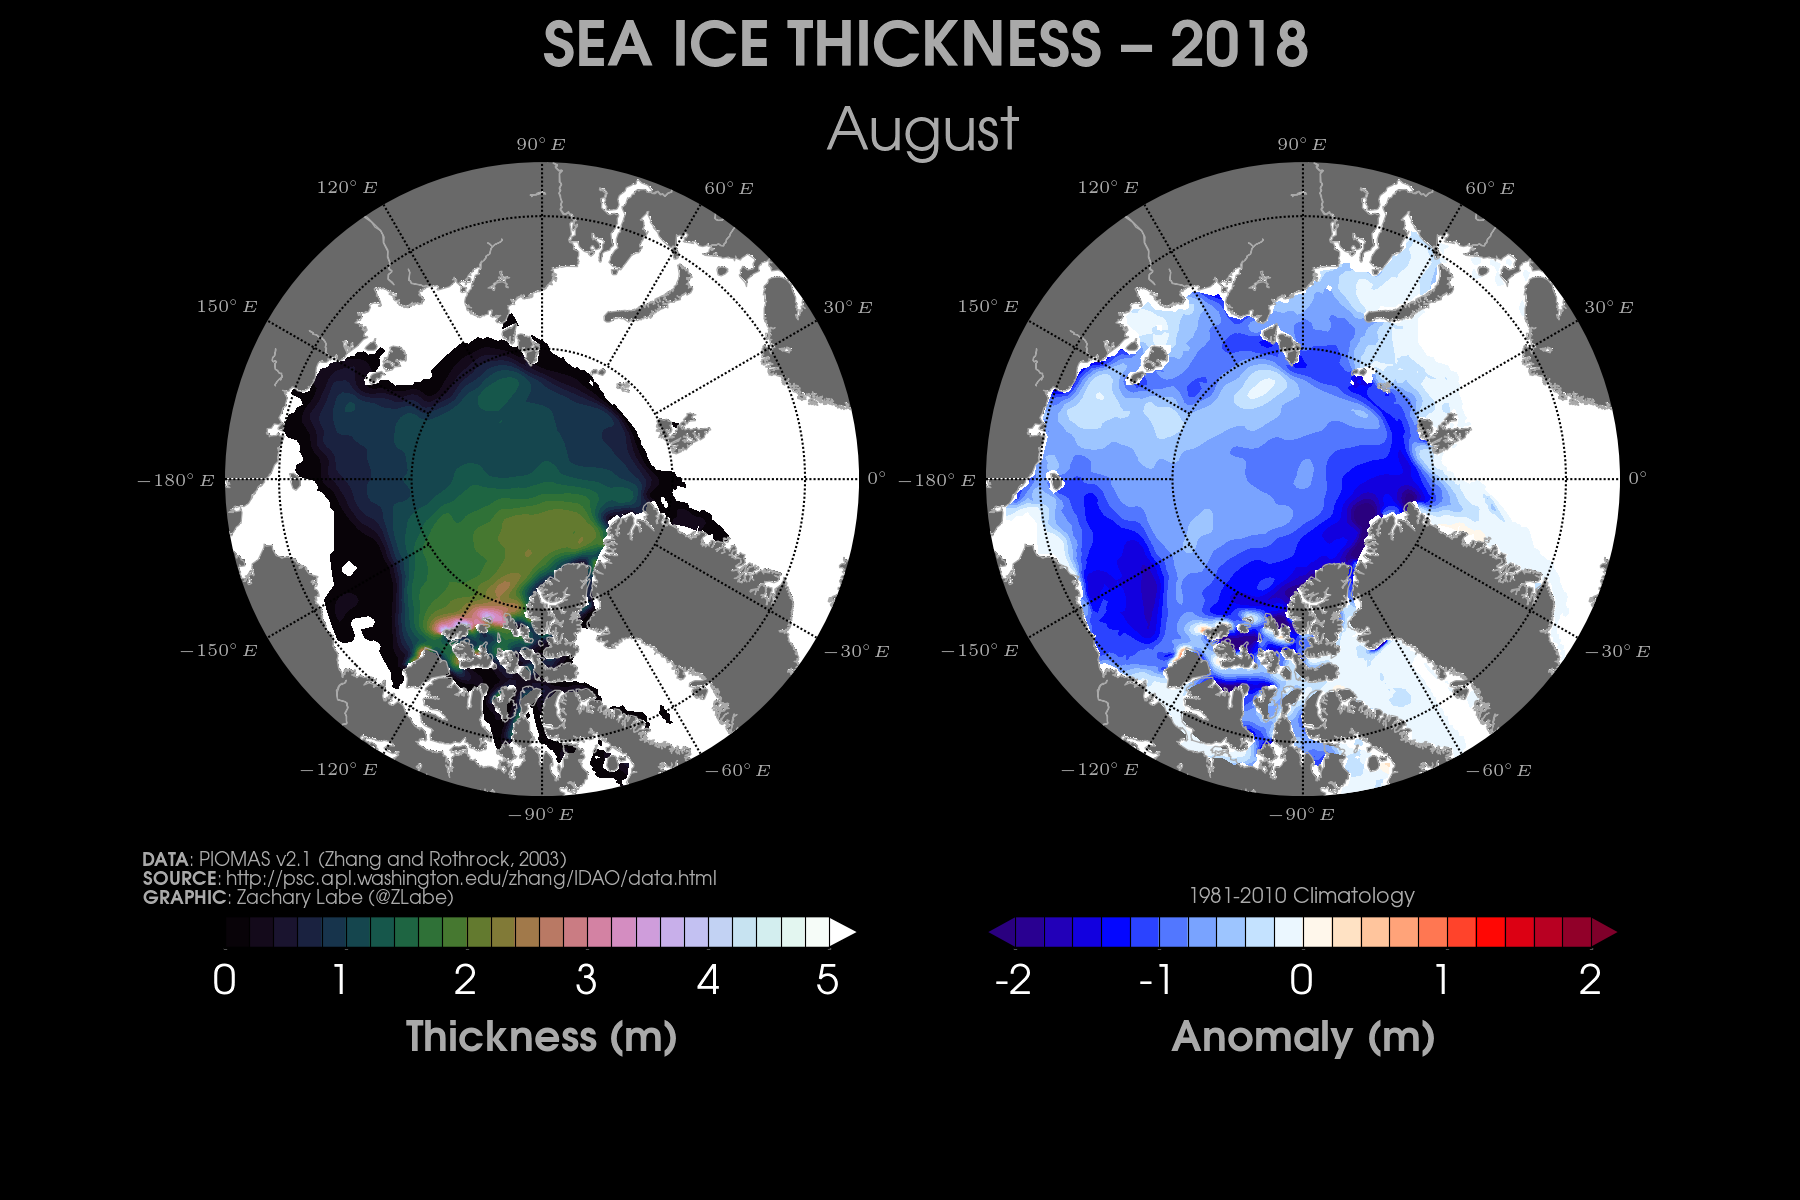 Current simulated (PIOMAS; Zhang and Rothrock, 2003) sea ice thickness (left) and anomalies relative to a 1981-2010 baseline (right) for August 2018.